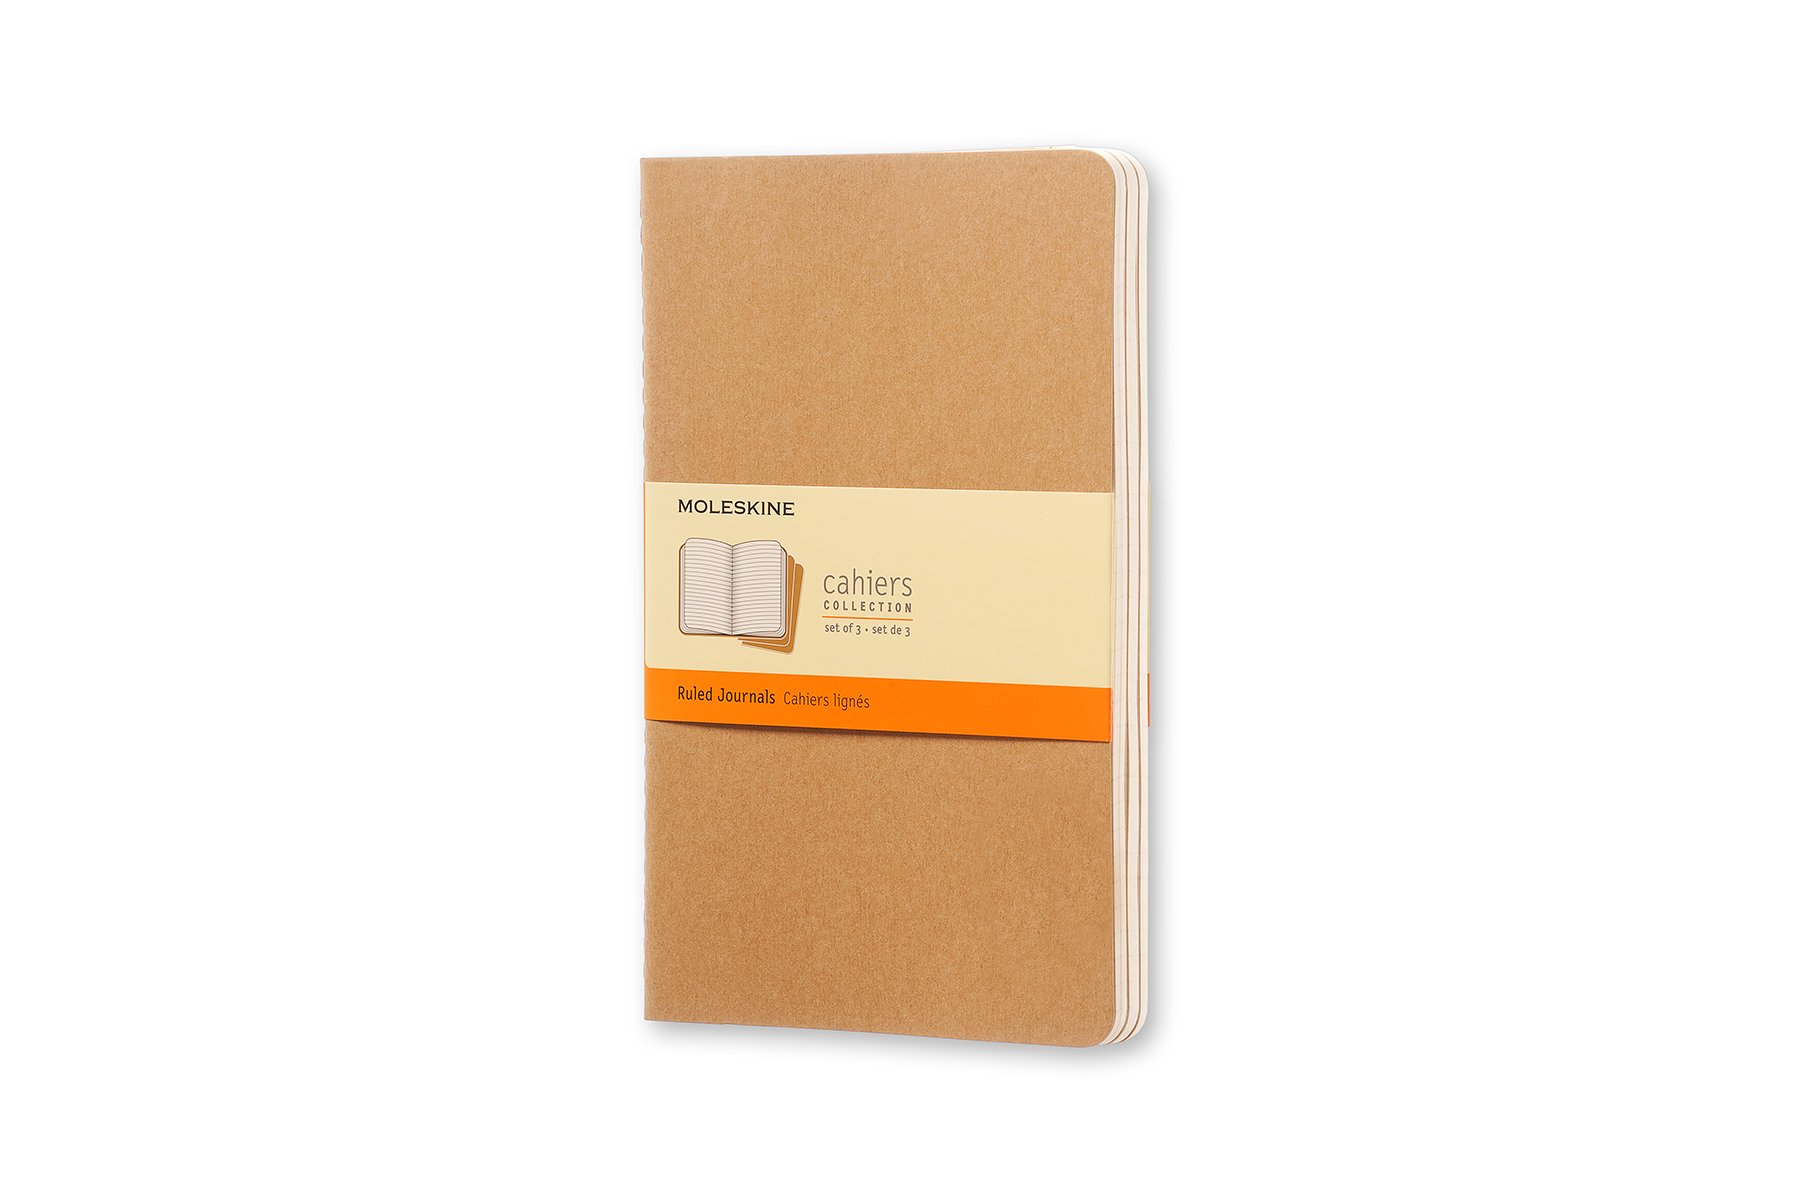 Moleskine Cahier Soft Cover Journal, Set of 3, Ruled, Large.